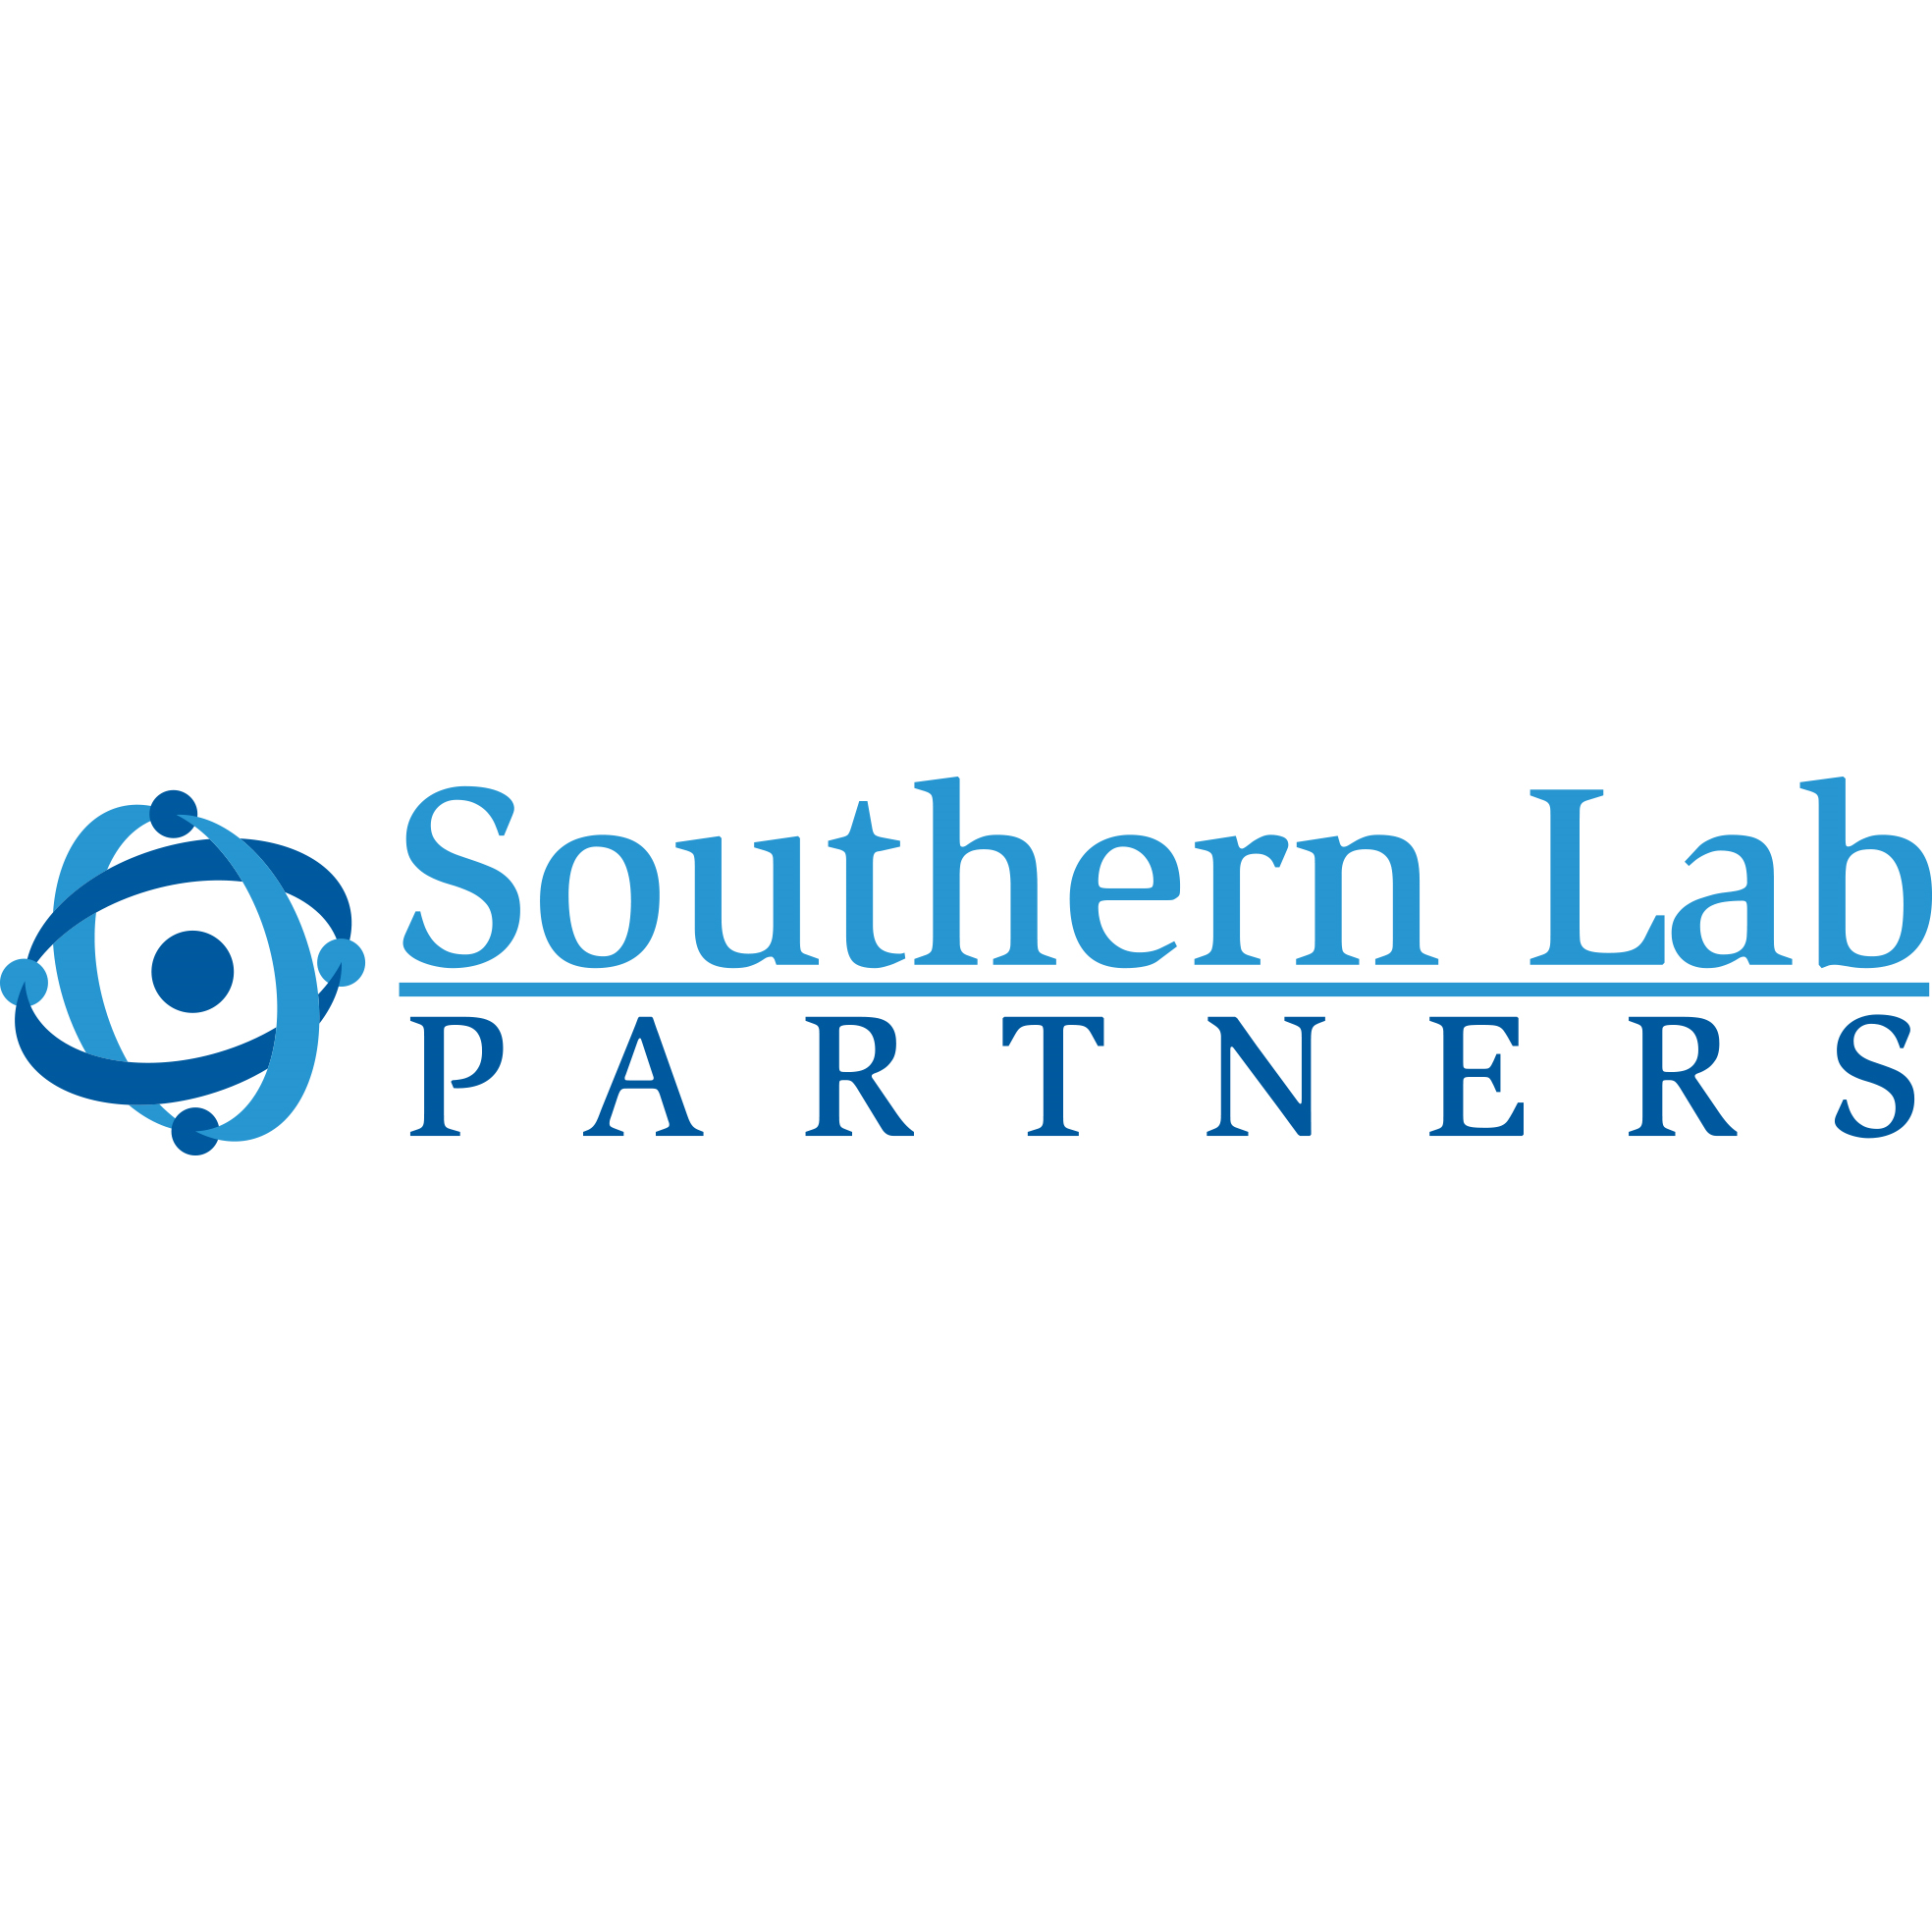 Southern Lab Partners